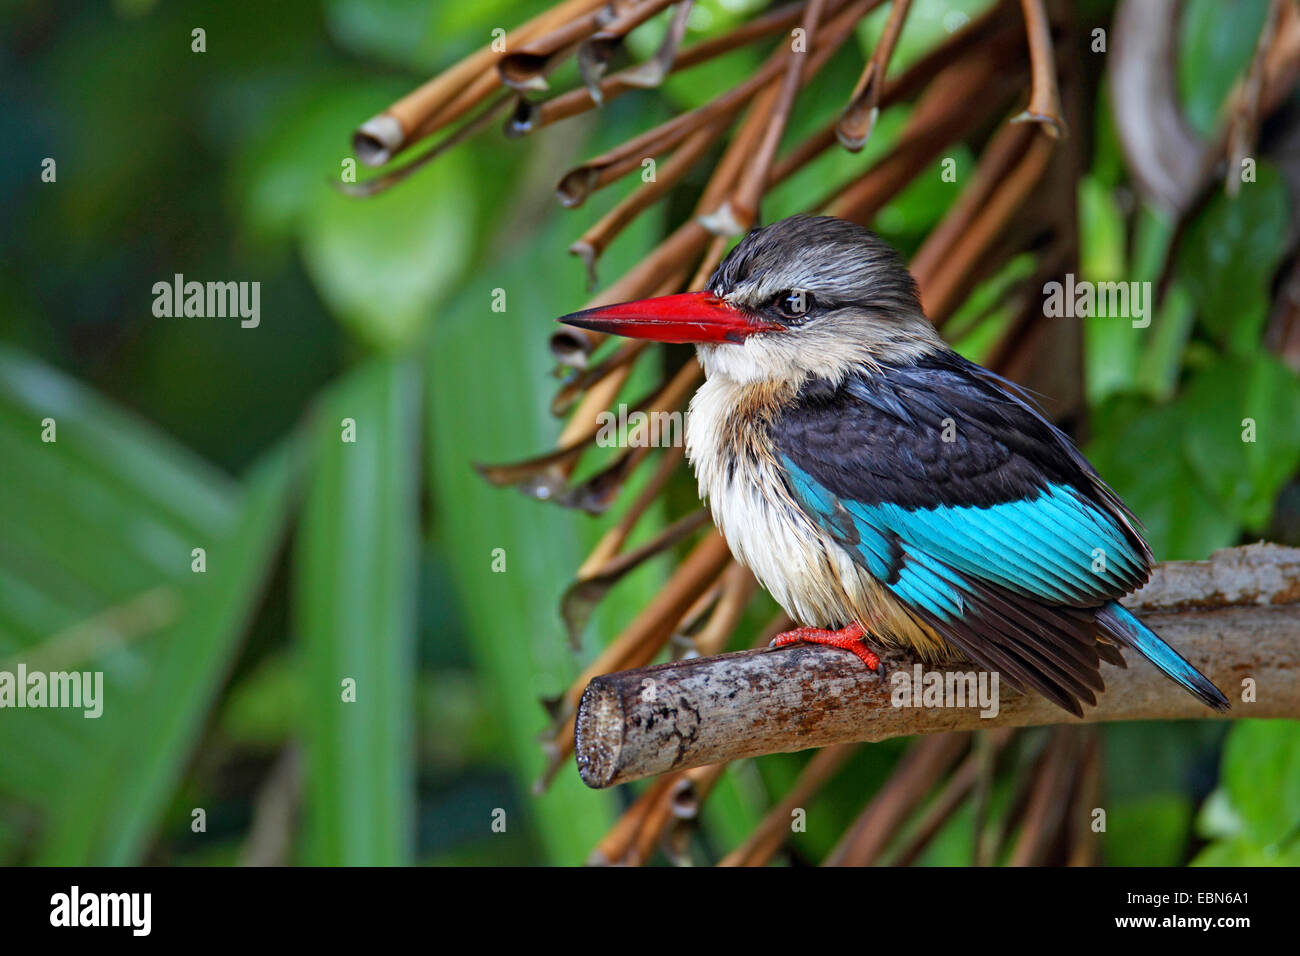 brown-hooded kingfisher (Halcyon albiventris), male sitting in a bush, South Africa, St. Lucia Wetland Park - Stock Image